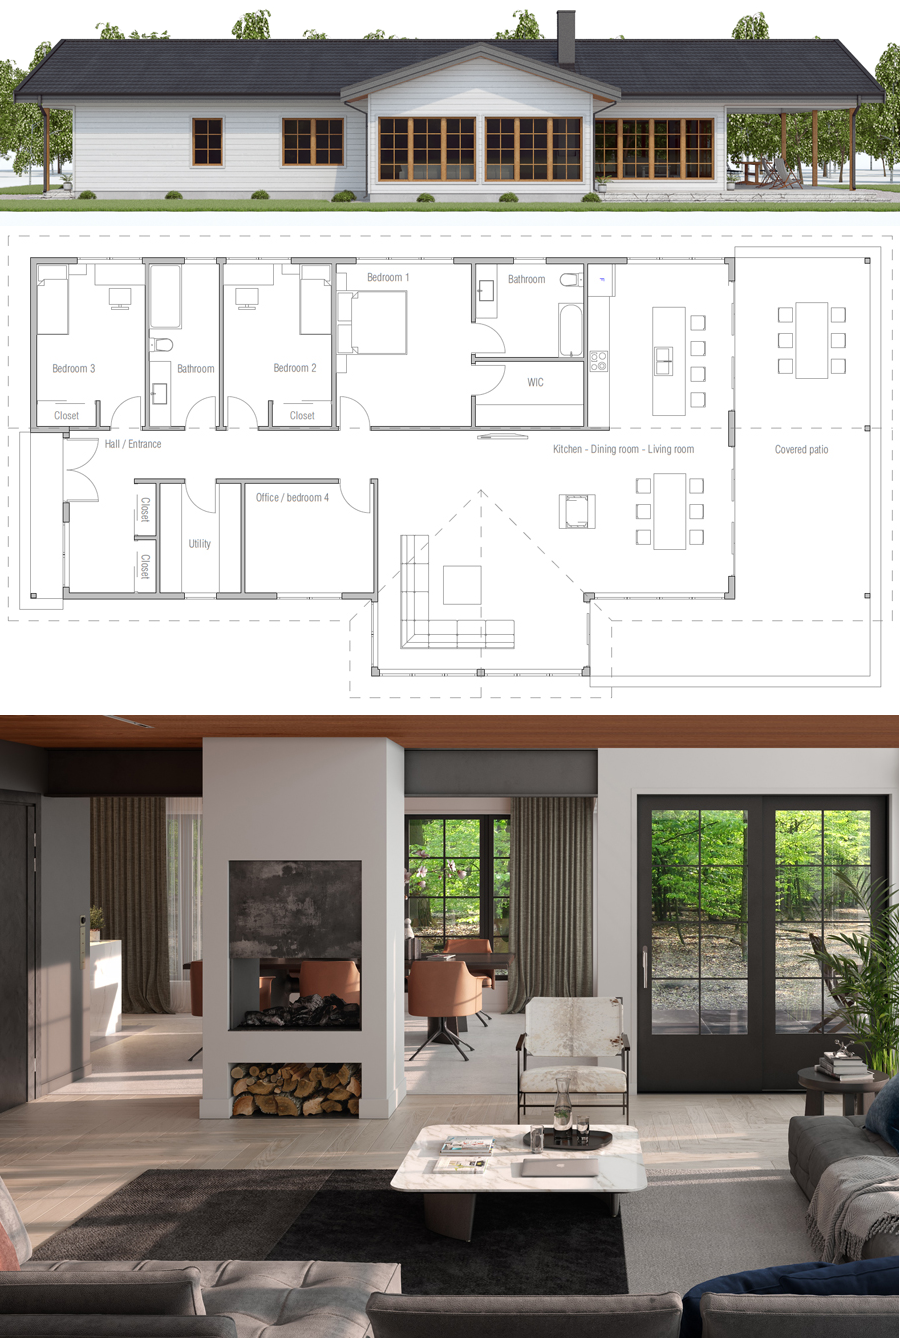 Plan Interieur Maison Moderne Floor Plan Floorplans Plan De Maison Floor Plans In 2019